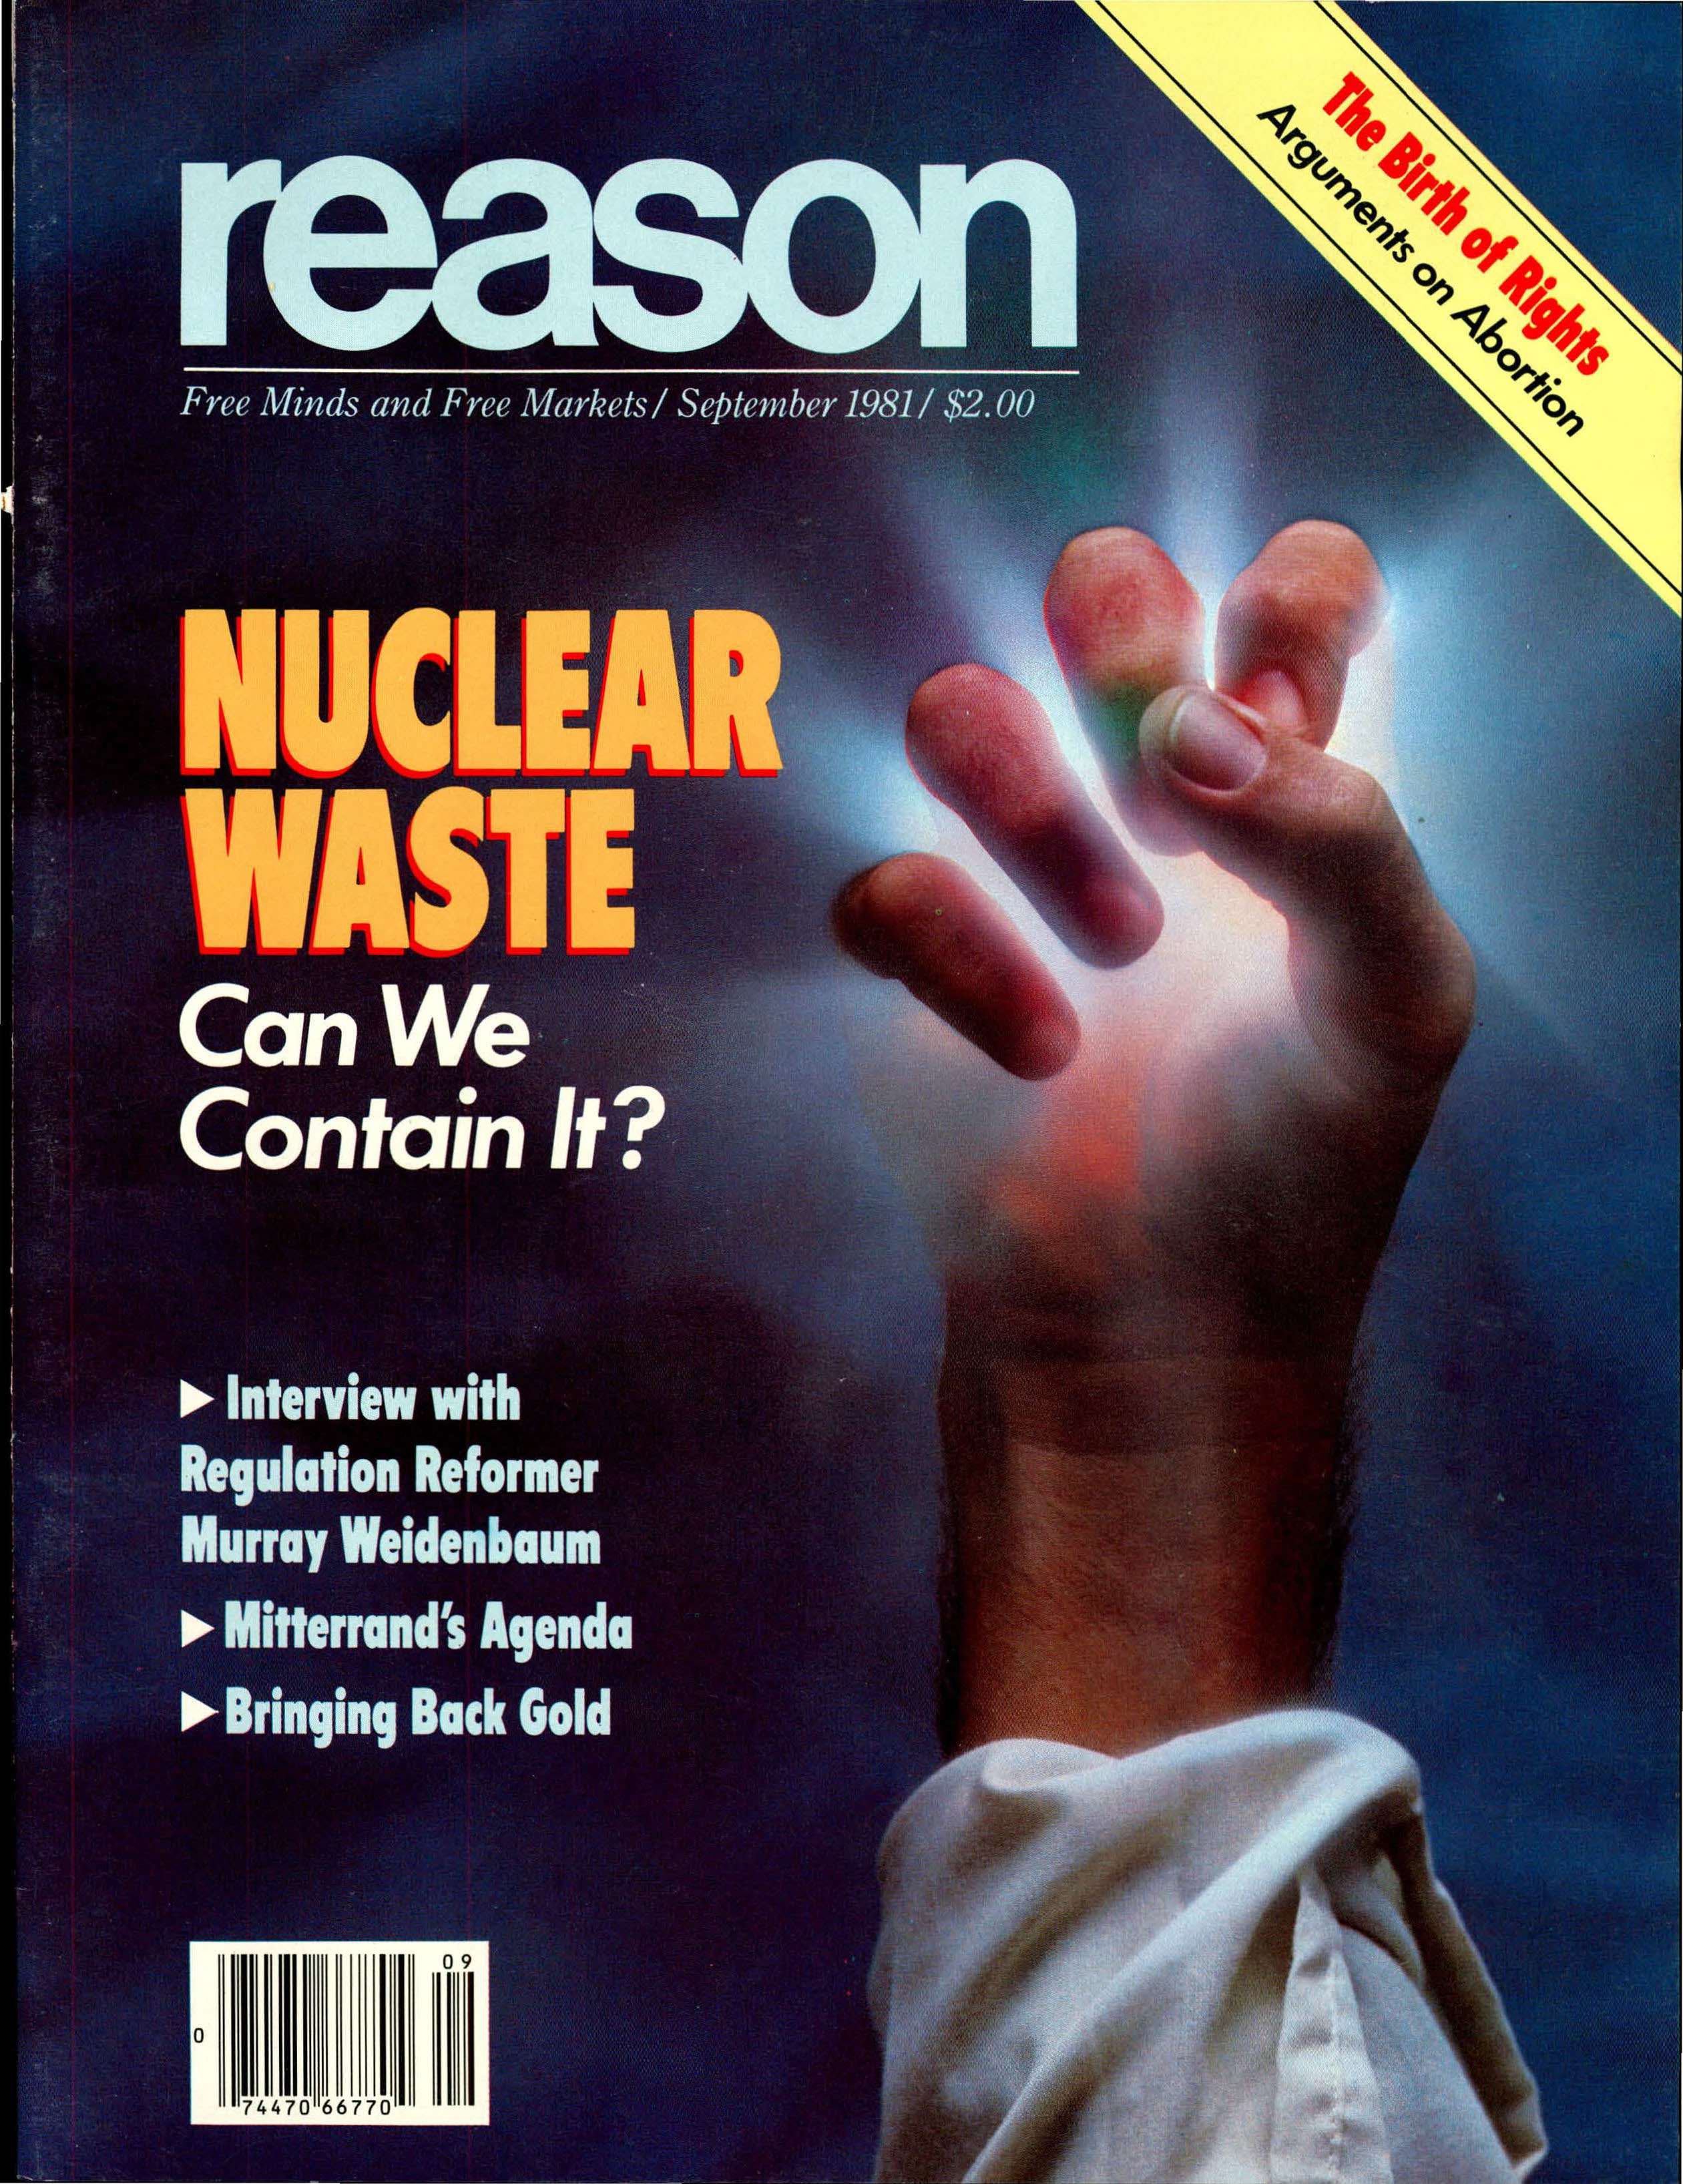 Reason Magazine, September 1981 cover image